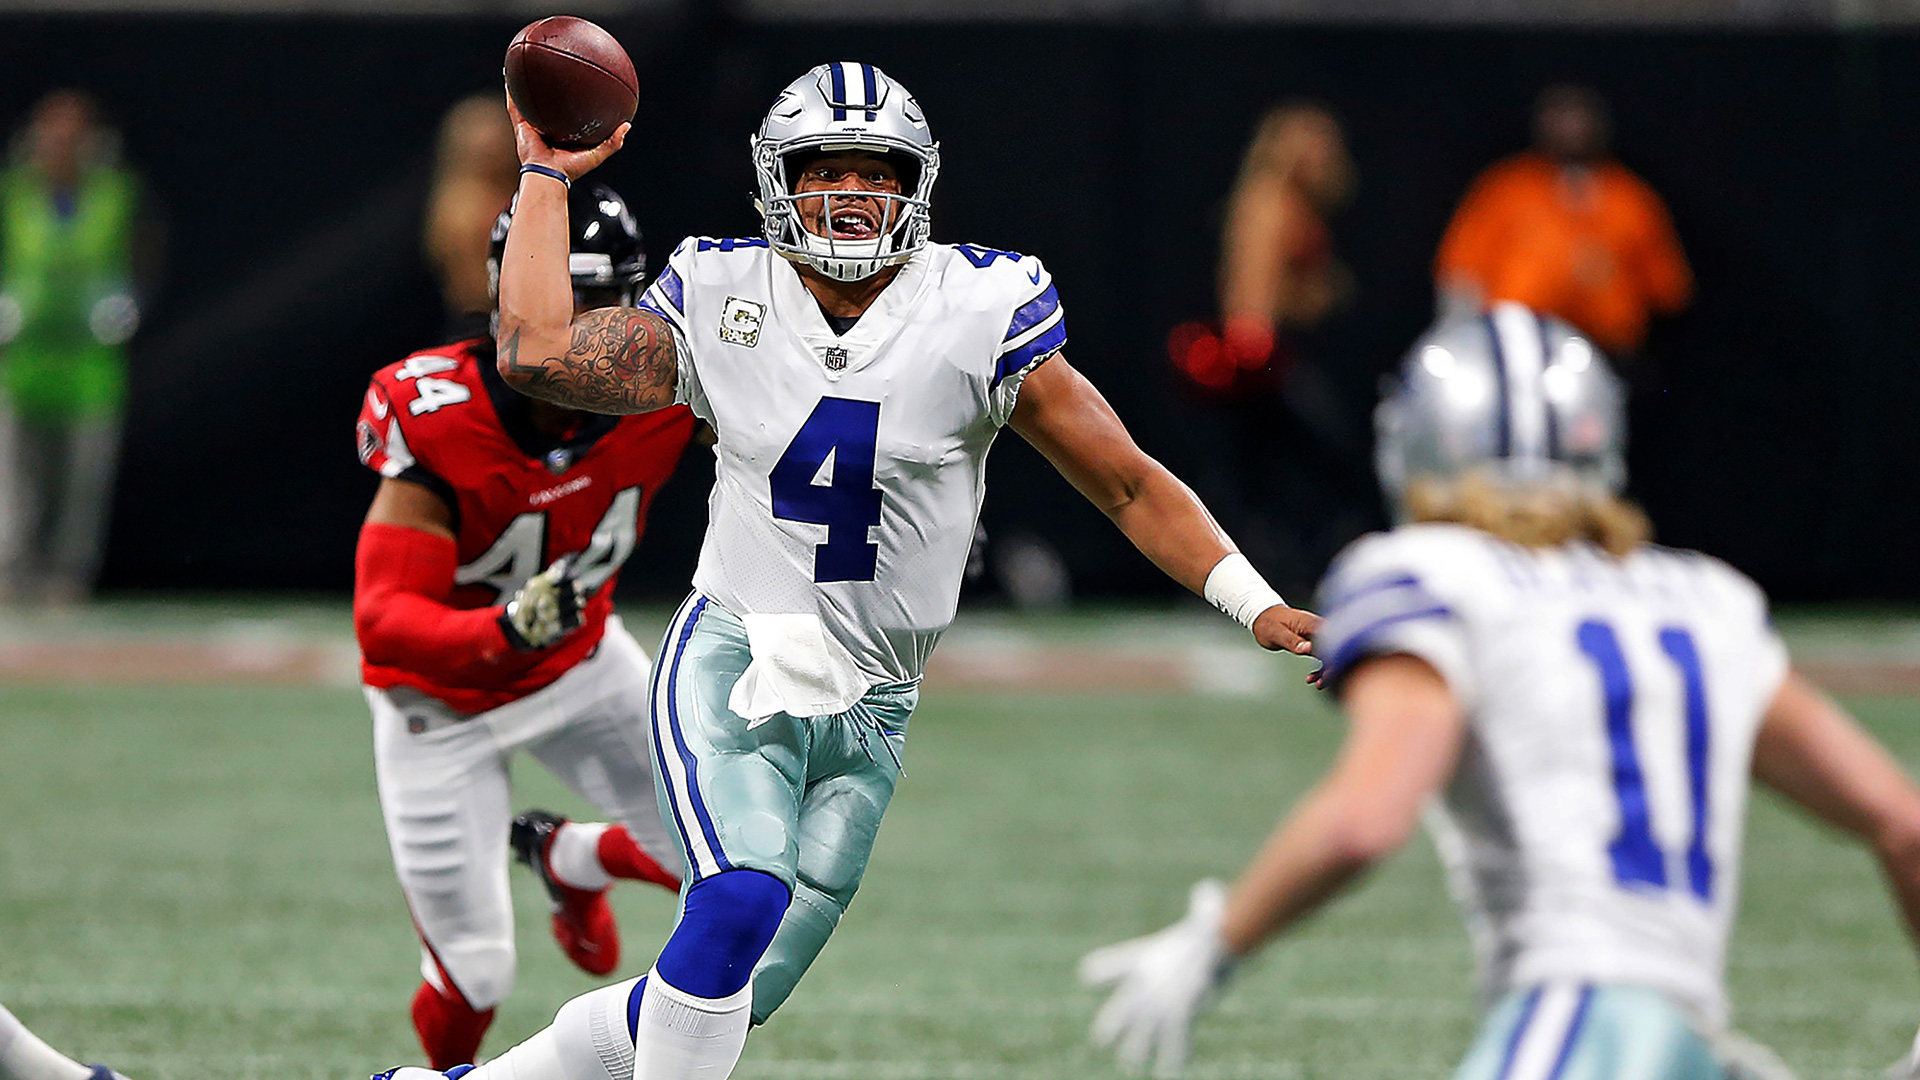 Dallas Cowboys quarterback Dak Prescott (4) scrambles up the middle during a 2017 NFL week 10 regular season game against the Atlanta Falcons, Sunday, Nov. 12, 2017 in Atlanta, Ga.  The Falcons defeated the Cowboys, 27-7.  (James D. Smith via AP)